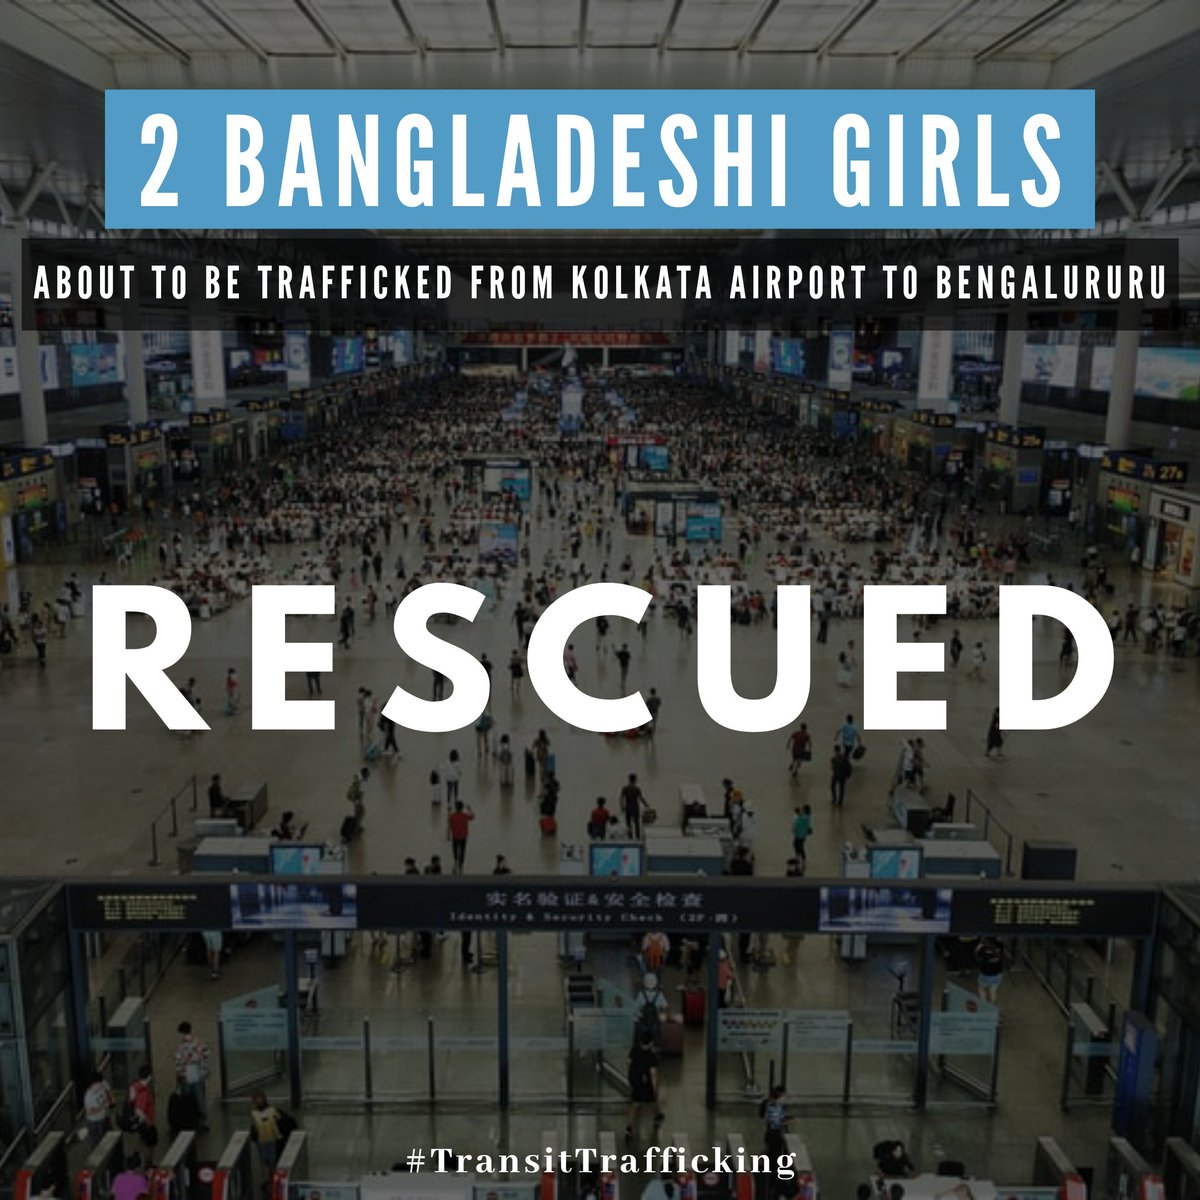 2 #Bangladeshi girls who were being #trafficked to #Bangaluru were #rescued from #KolkataAirport after a complaint was filed against a suspicious man. The #accused and #victims were detailed at the boarding gate, after which the #KolkataAirportPolice arrested the #trafficker.